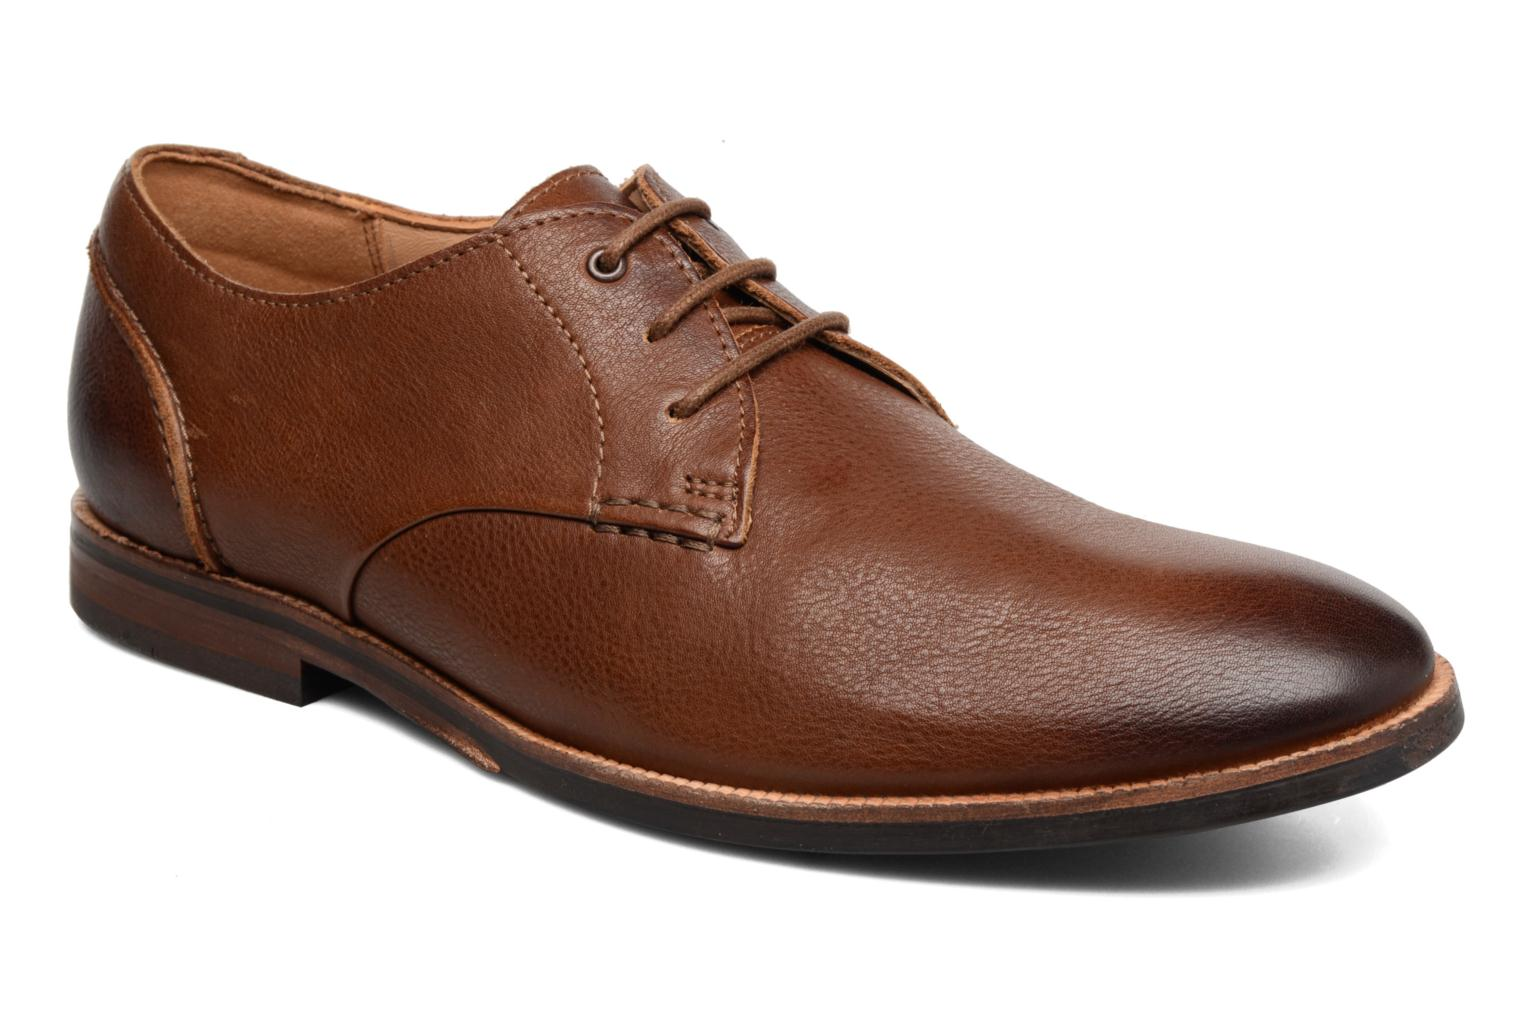 Clarks Brown Leather Marron sWAx6h